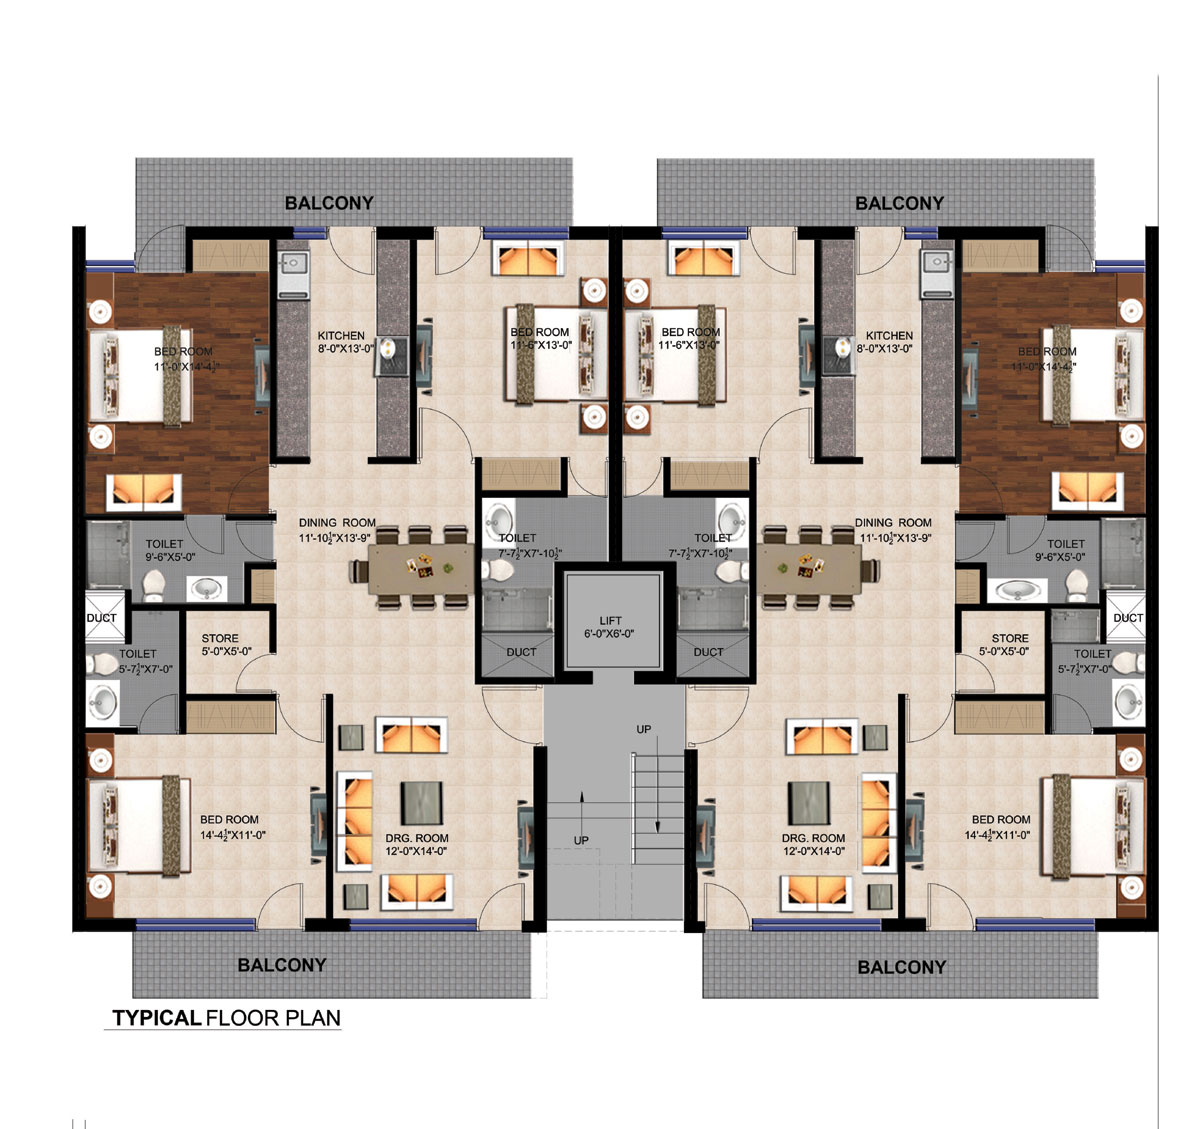 palm apartments manohar singh co independent floors in mullanpur new chandigarh real. Black Bedroom Furniture Sets. Home Design Ideas